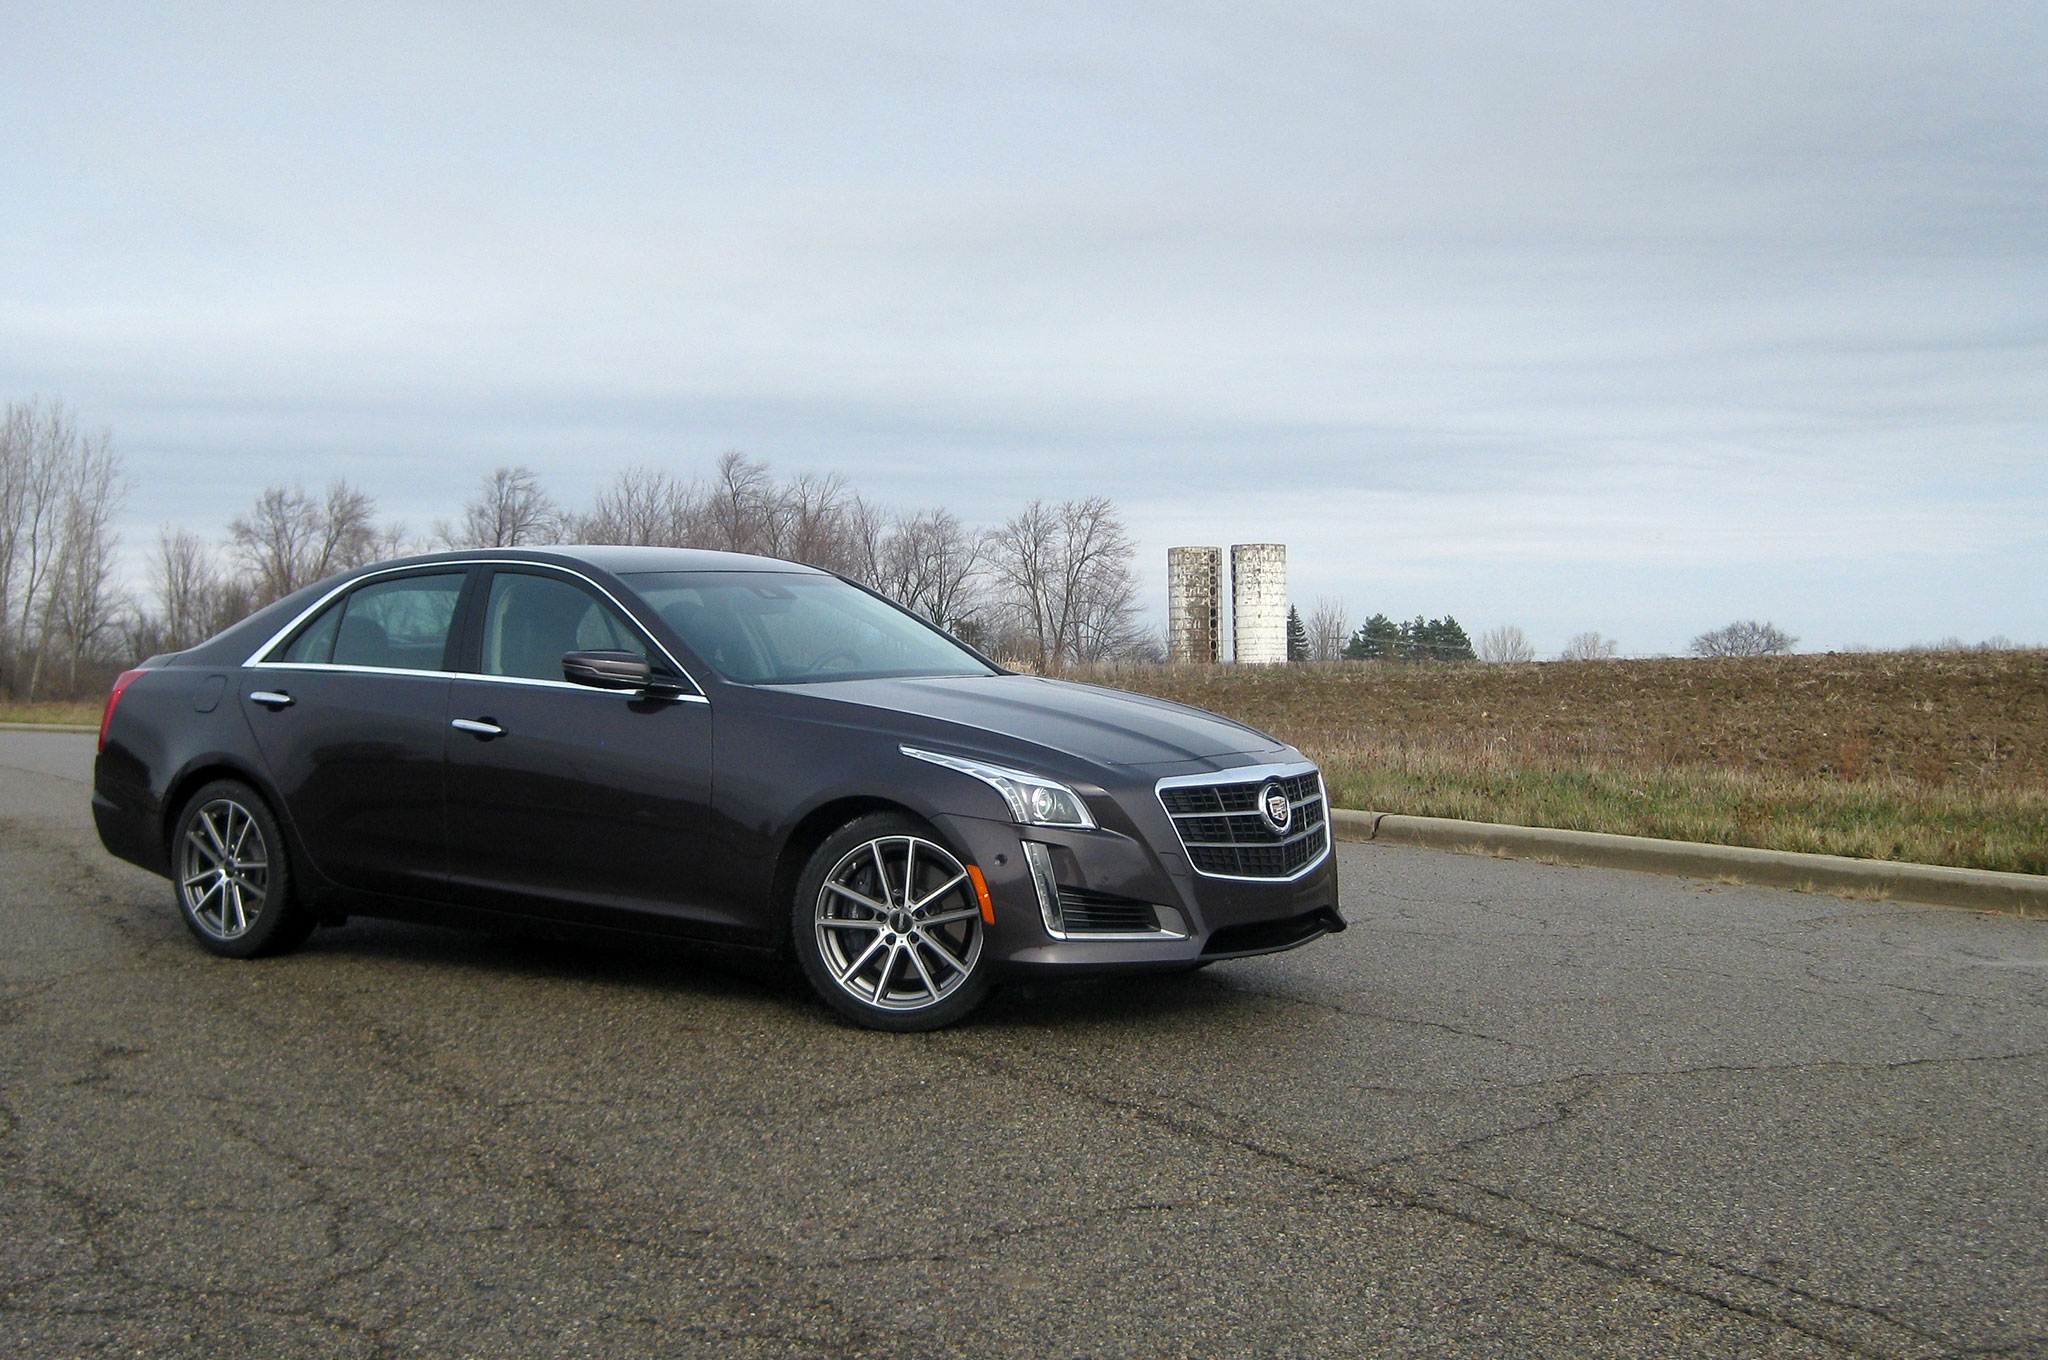 2014 cadillac cts vsport ready for winter. Black Bedroom Furniture Sets. Home Design Ideas